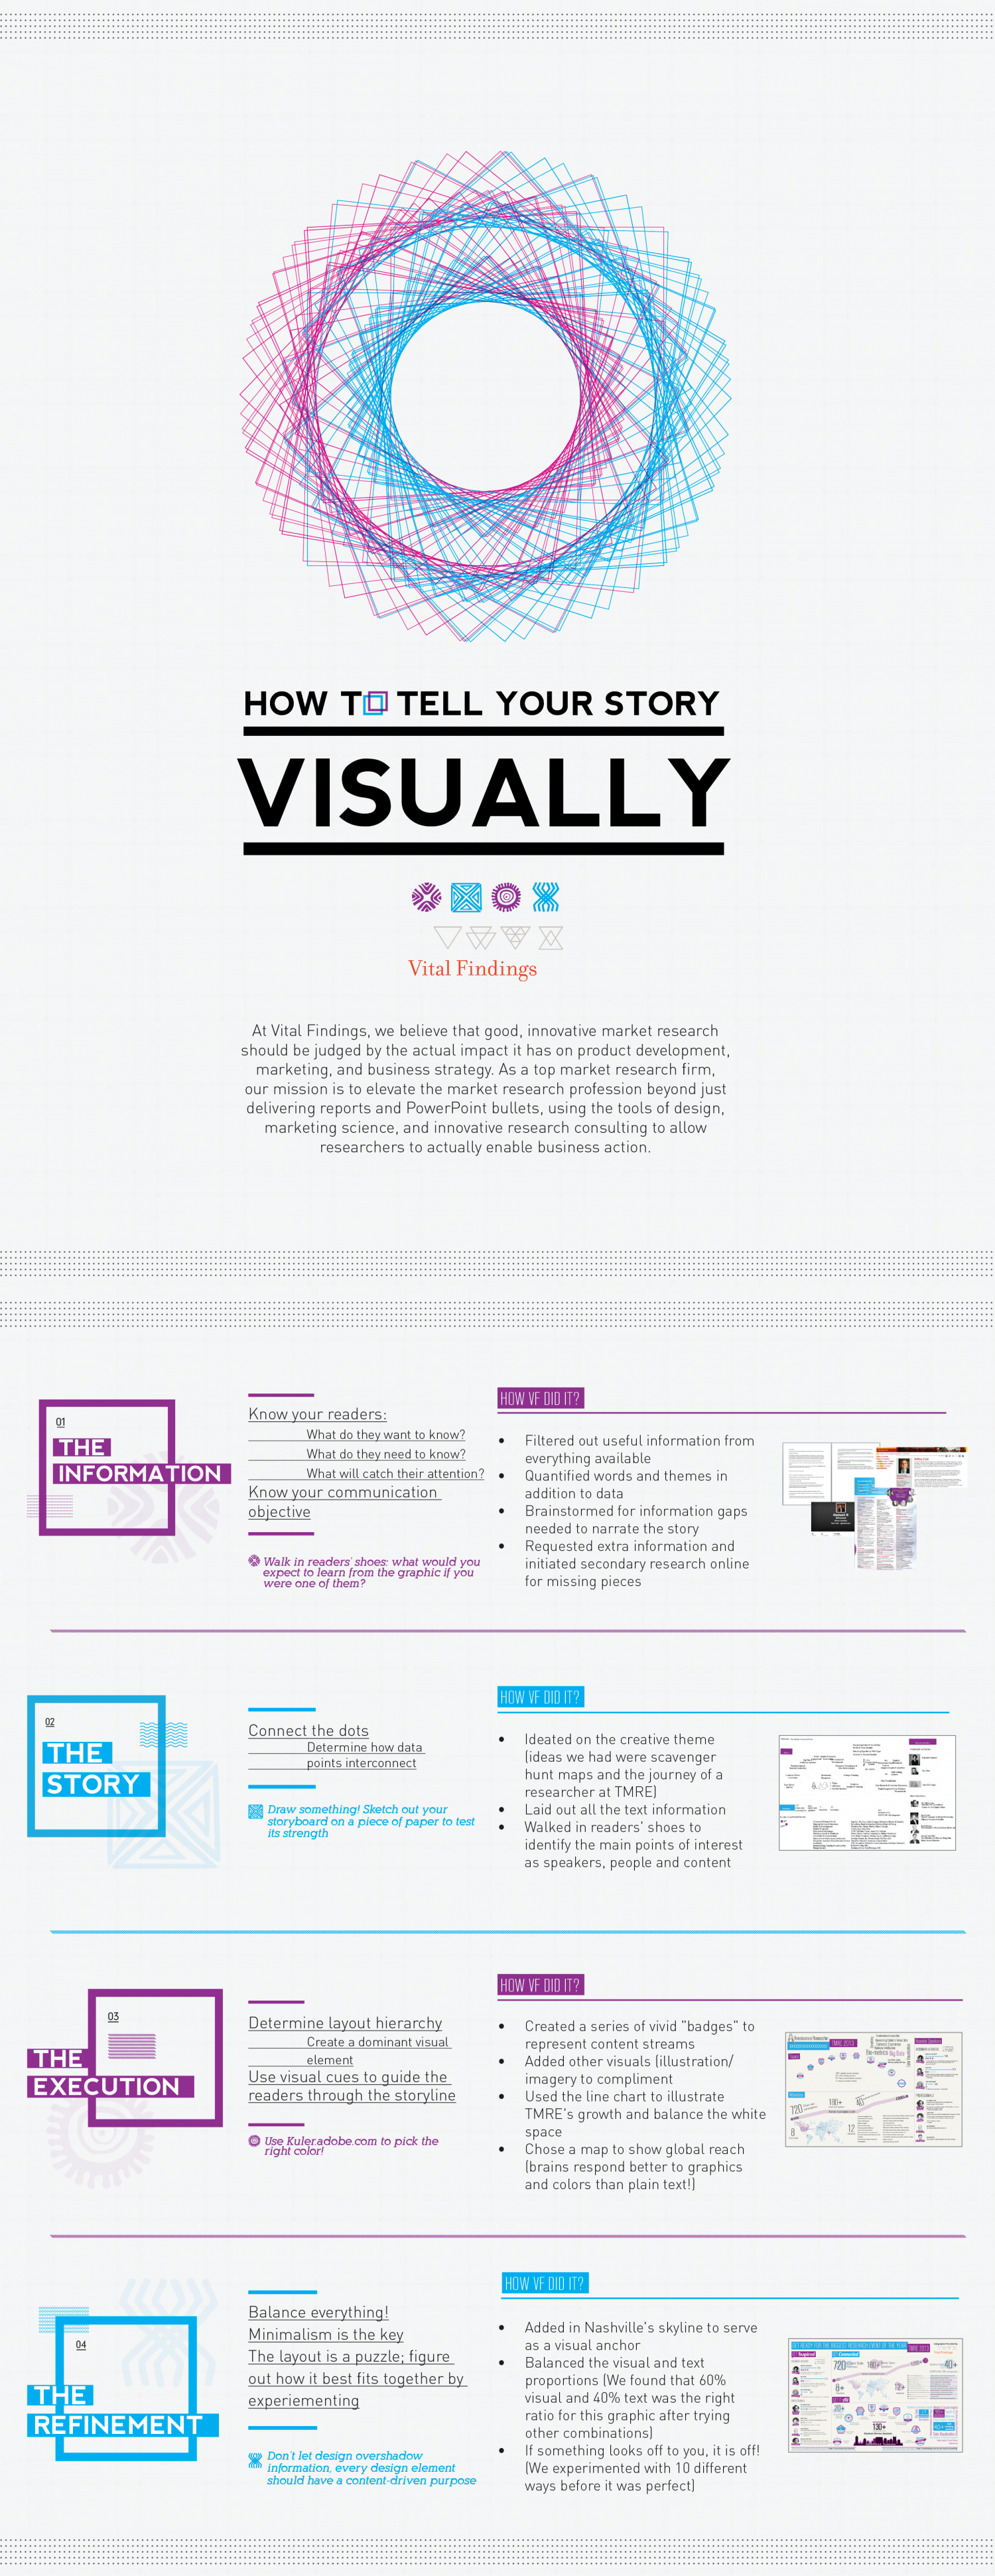 How to Tell Your Story Visually Infographic